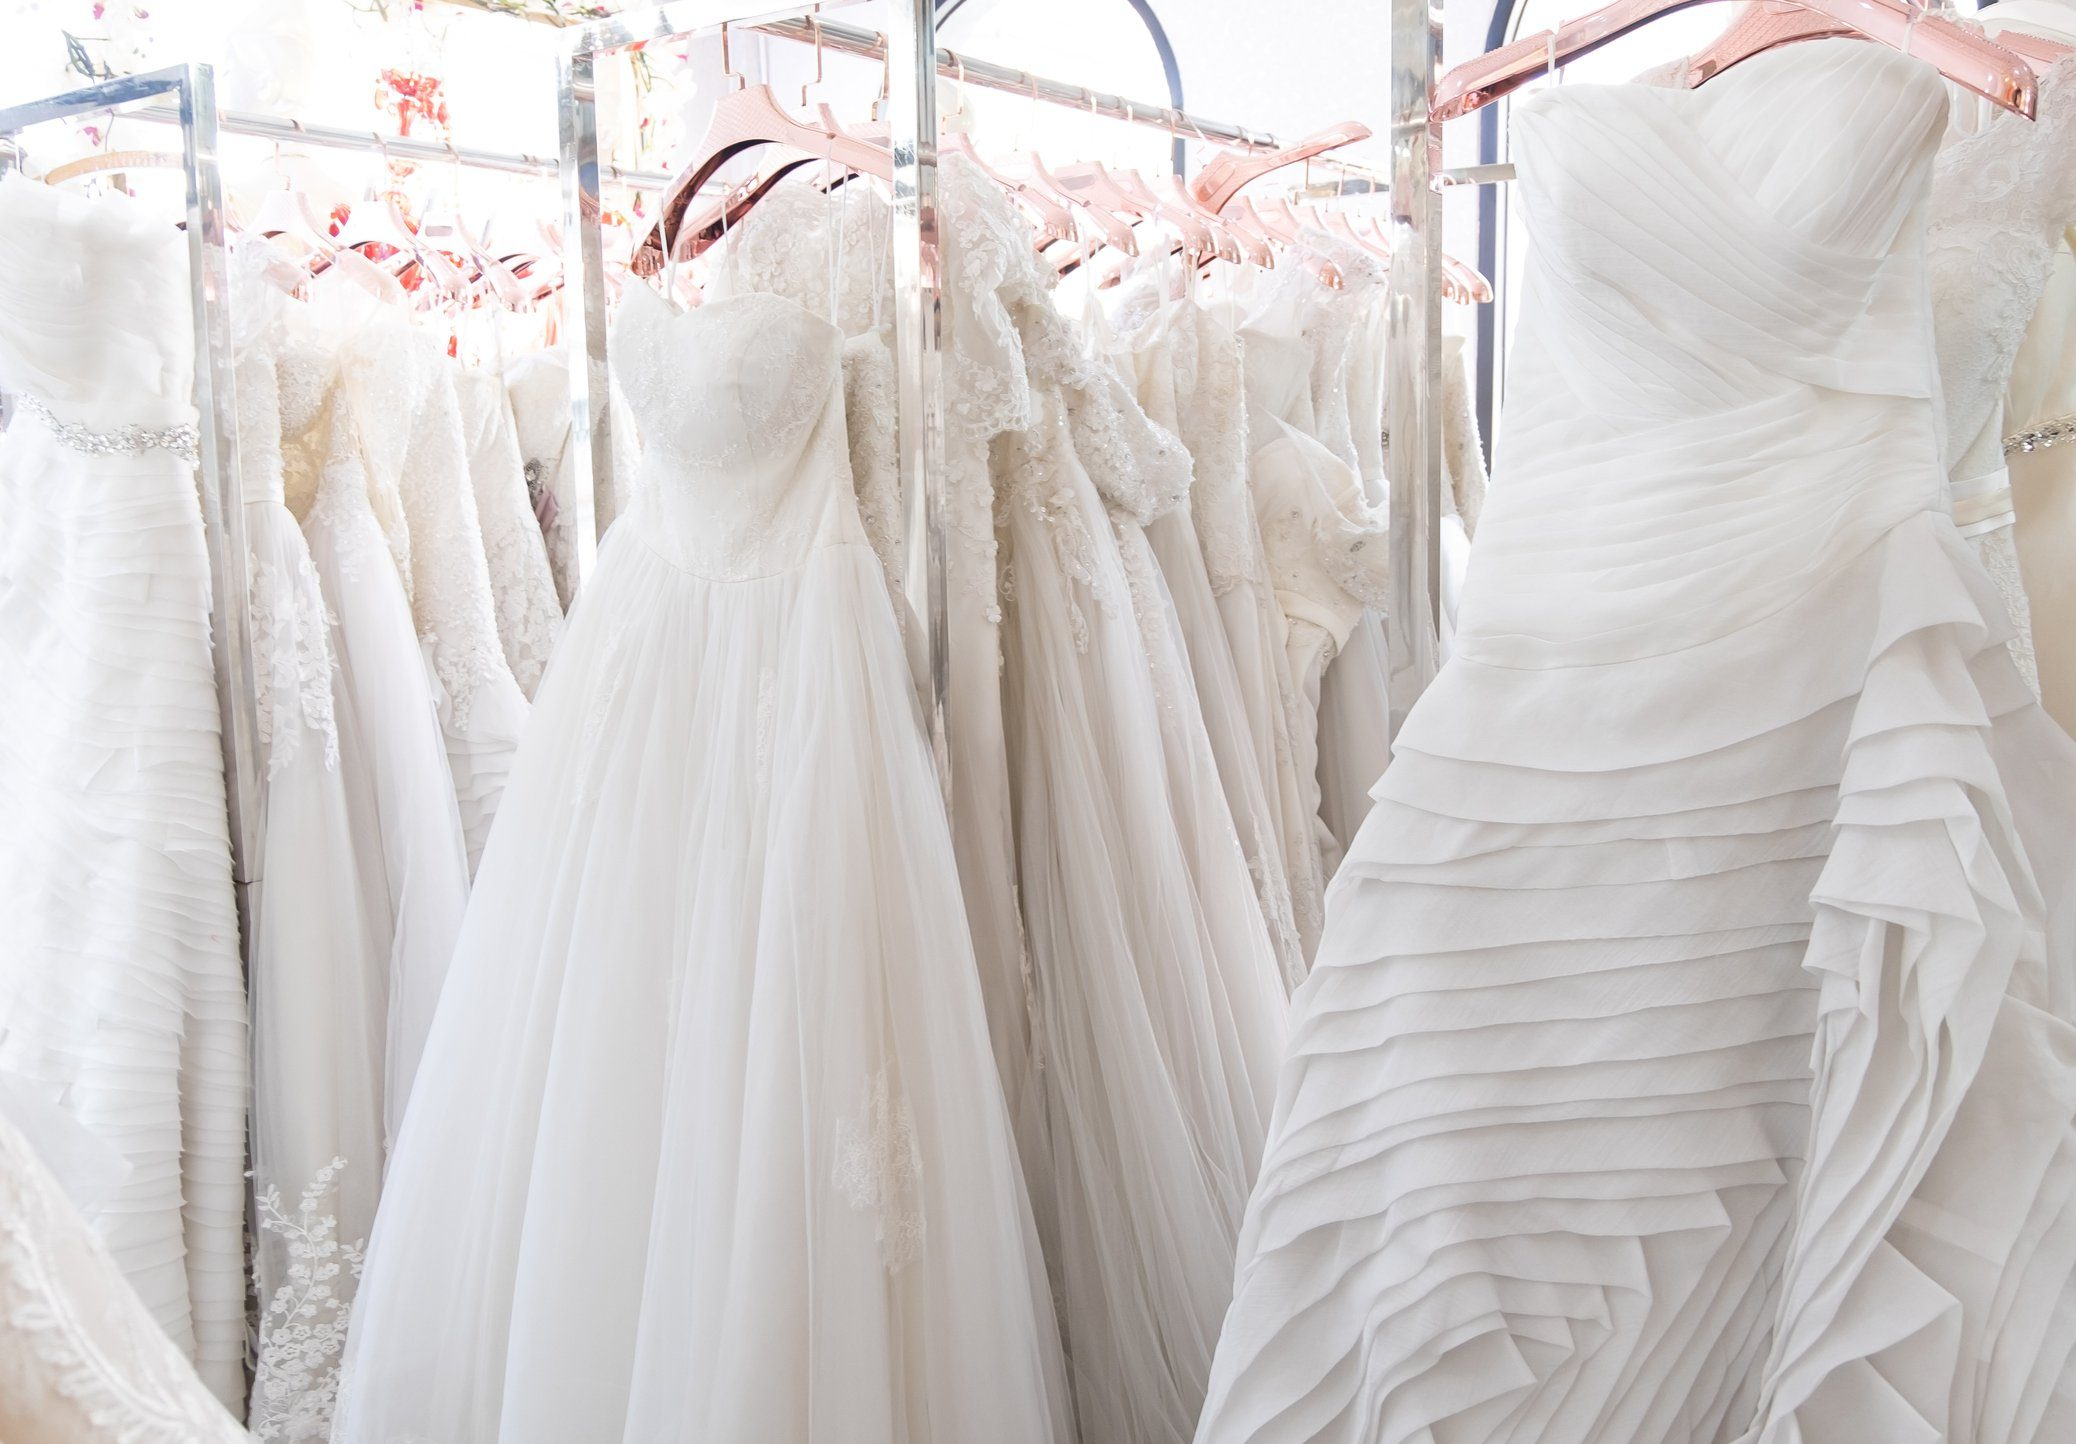 Beautiful, White bridal dress texture on background. Wedding dresses hanging on a hanger interior of bridal salon. Design, fashion modern luxury in detail.